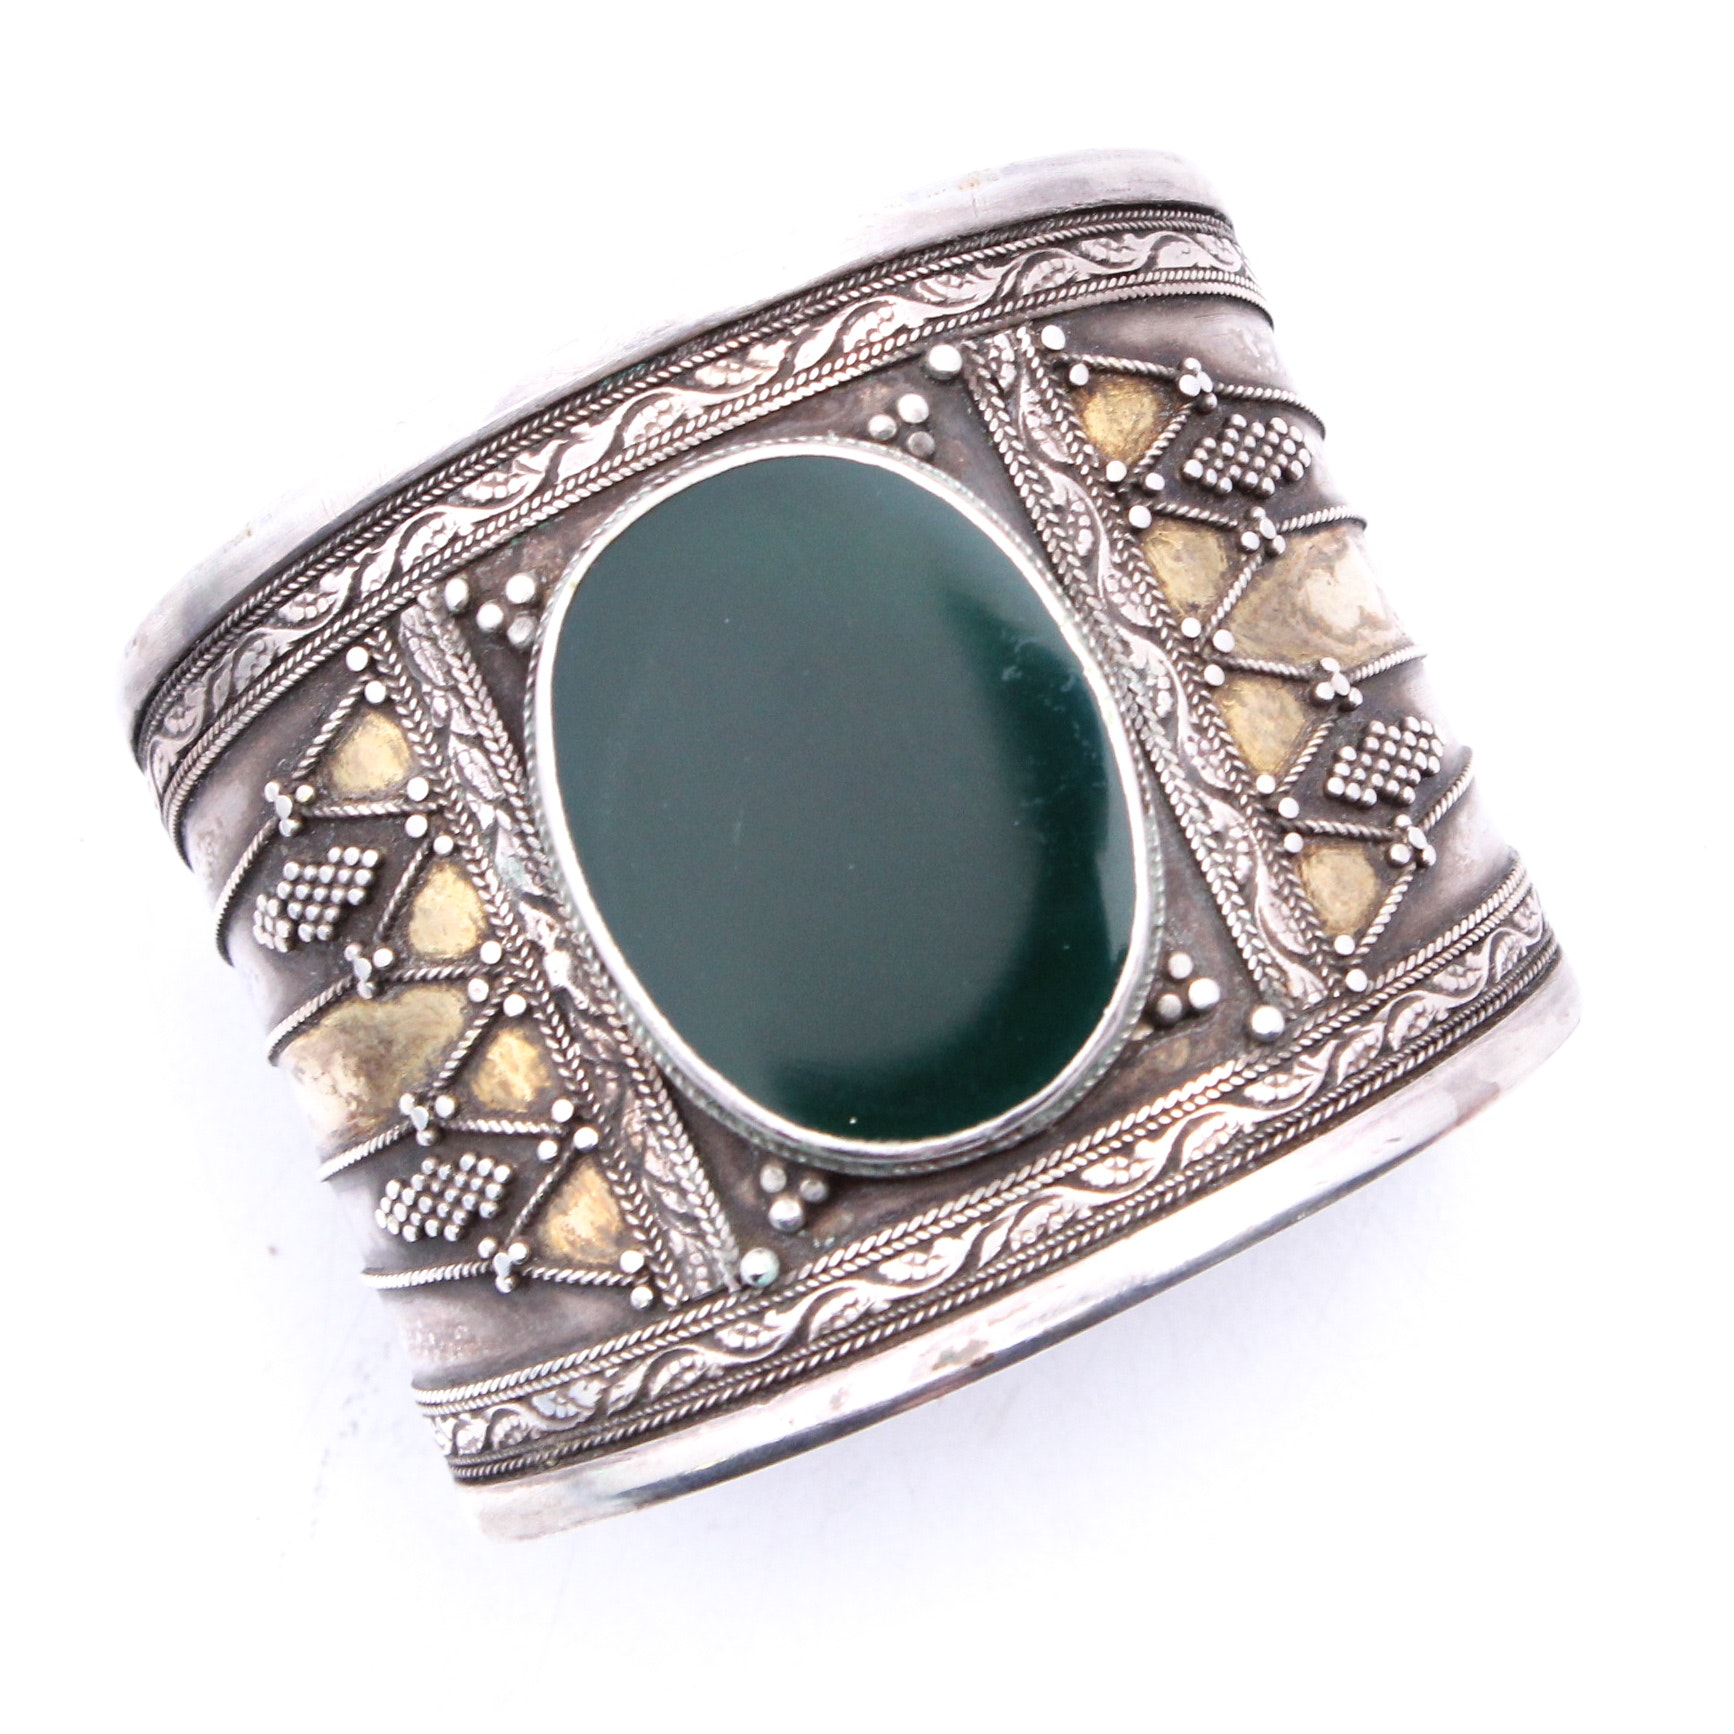 Sterling Silver and Glass Cuff Bracelet